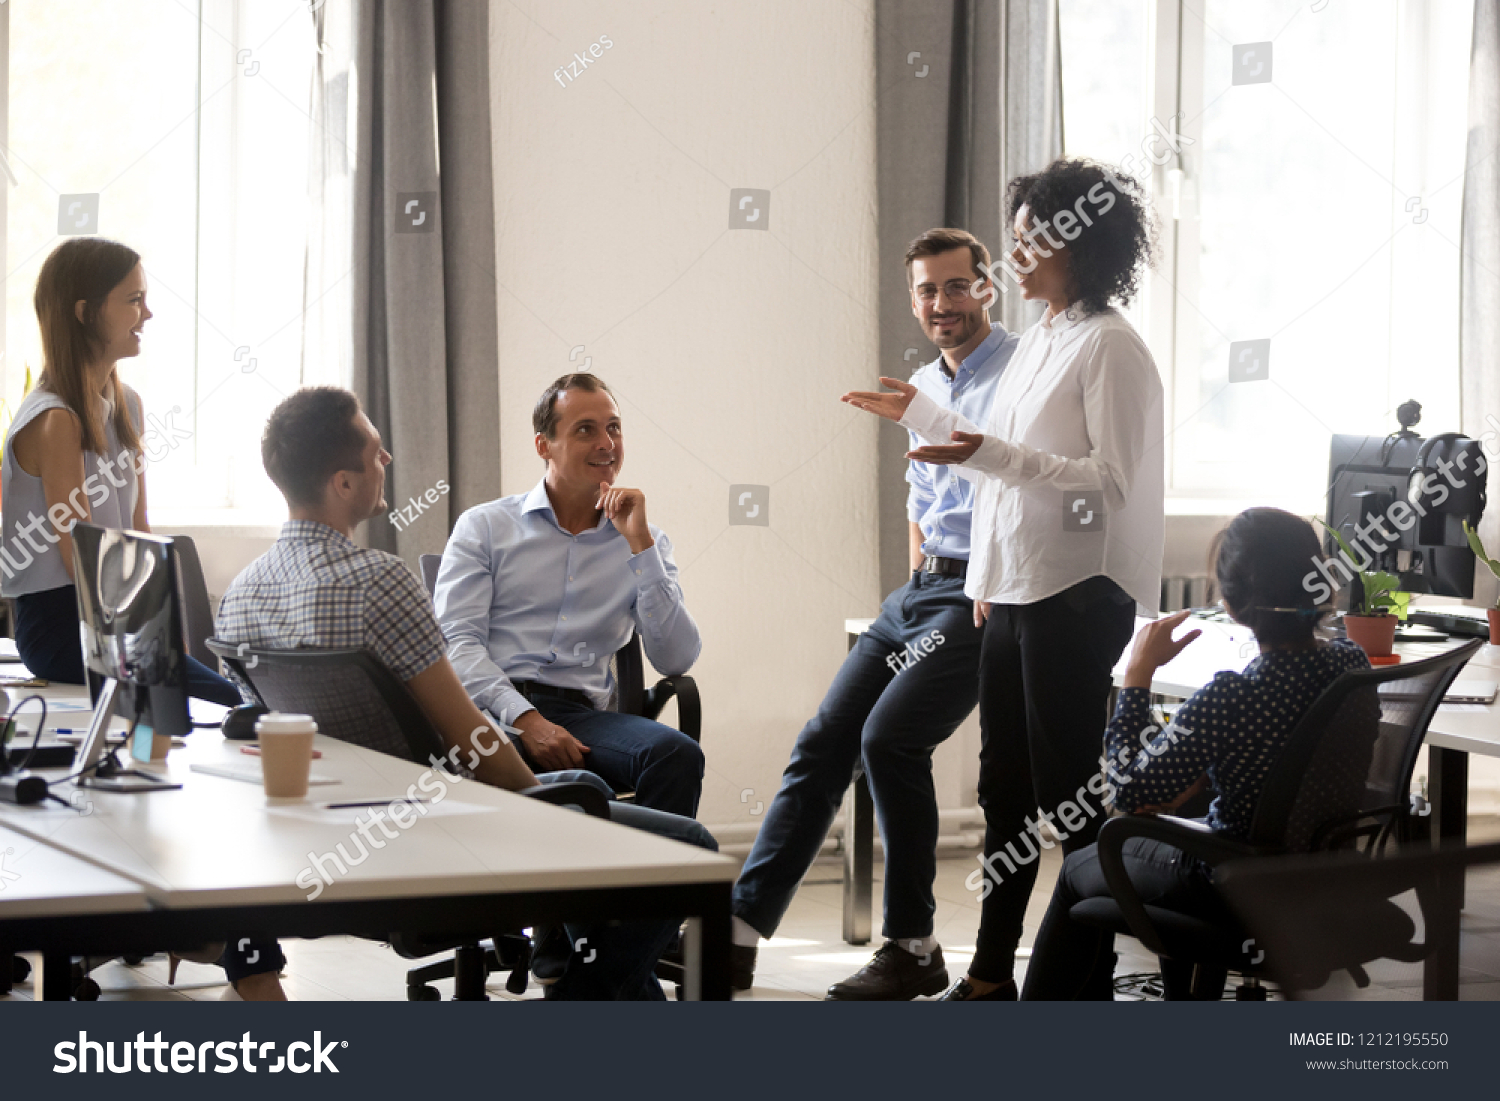 Smiling african manager coach speaking at diverse corporate group meeting, female black teacher team leader talking to office workers at training teaching employees explaining new idea, mentoring #1212195550